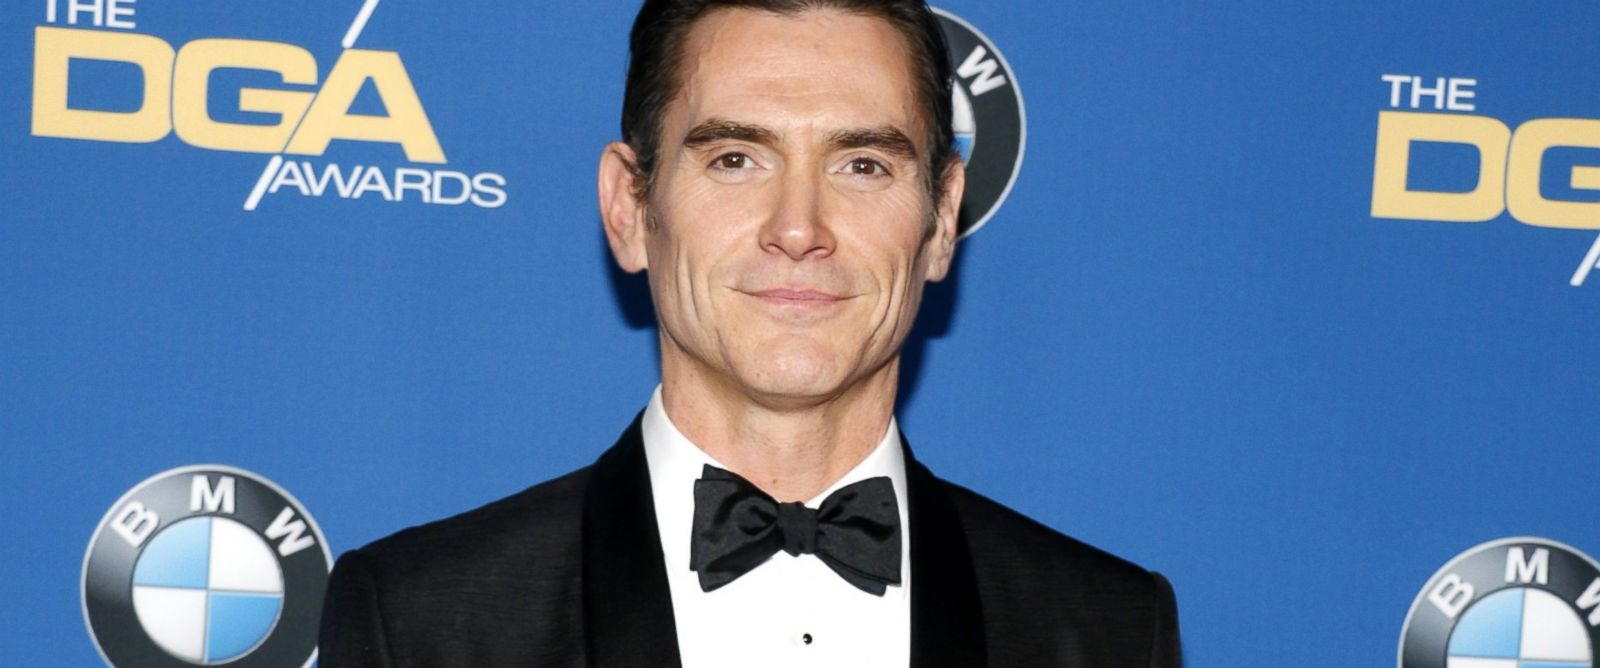 PHOTO: Billy Crudup at the 69th Annual Directors Guild Of America Awards held at the Beverly Hilton Hotel in Beverly Hills, California, on Feb. 4, 2017.